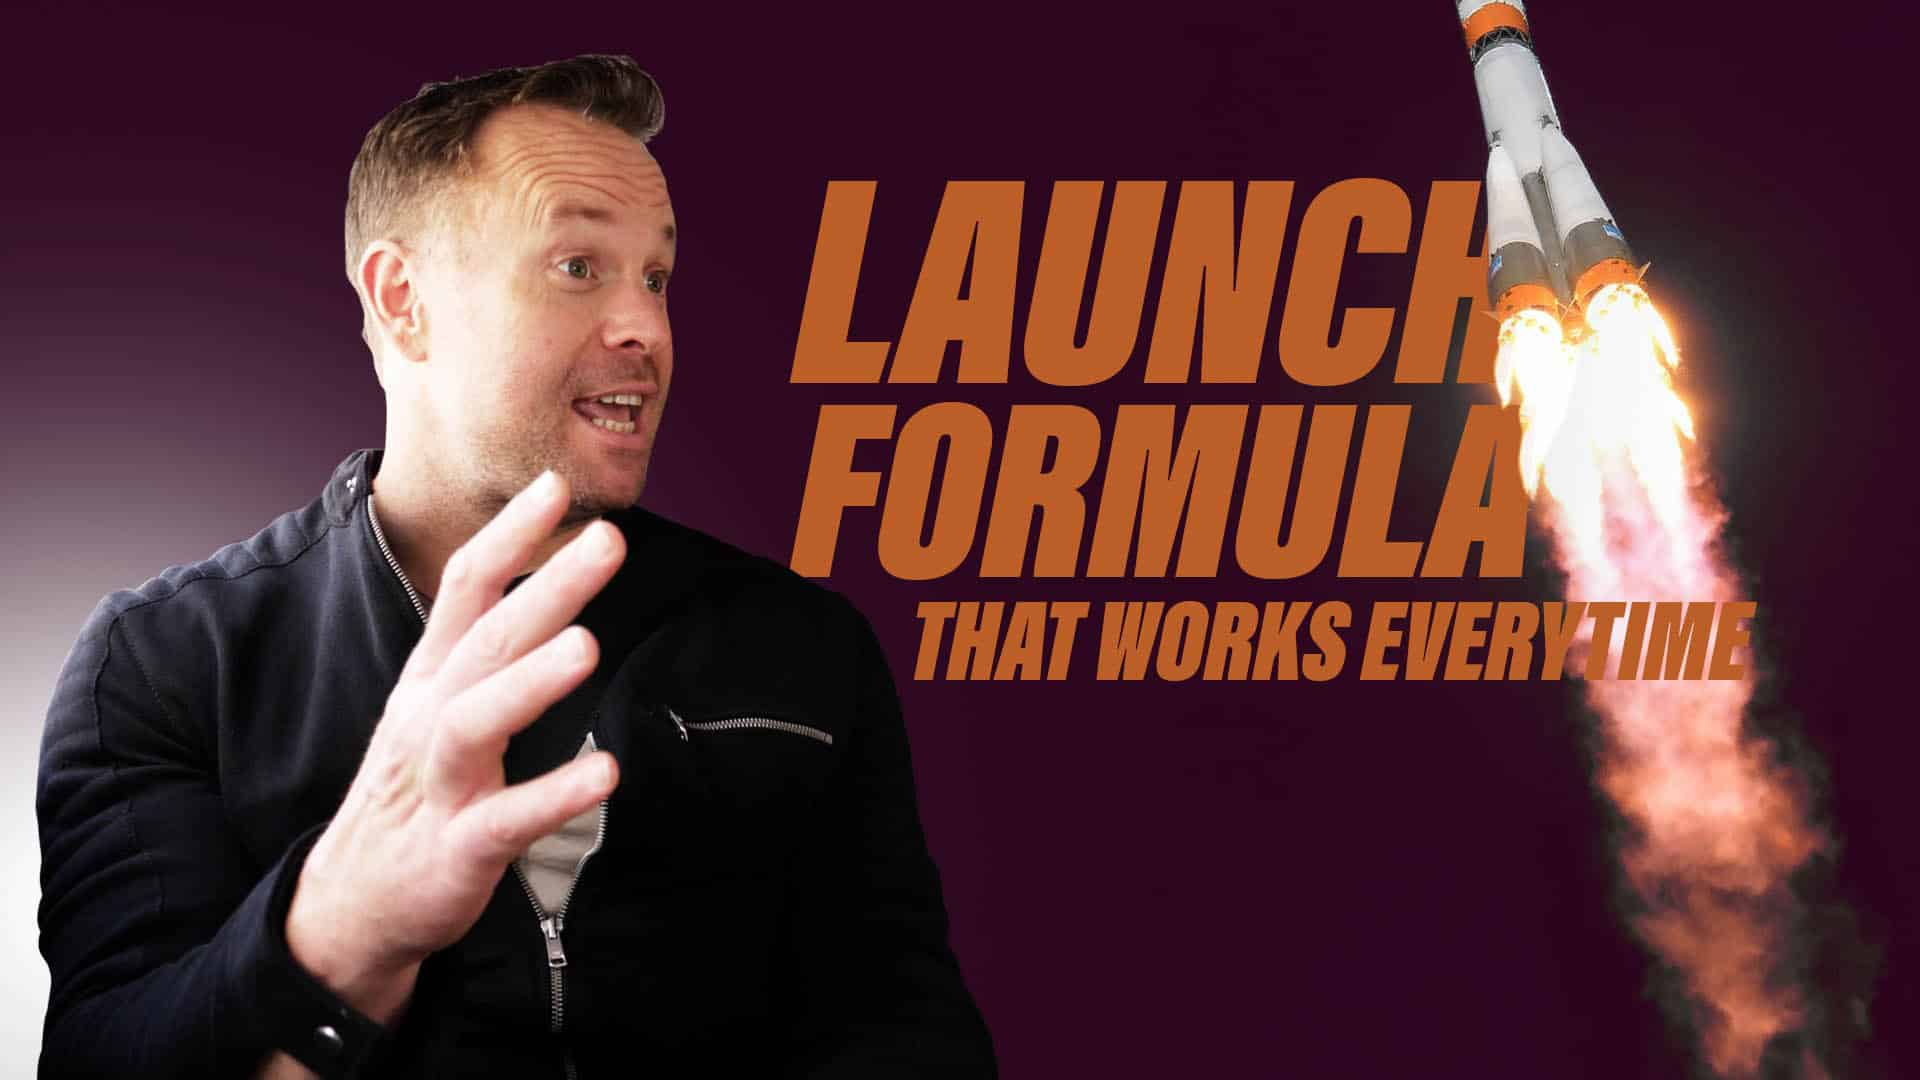 Trade secrets! The launch formula that works every time